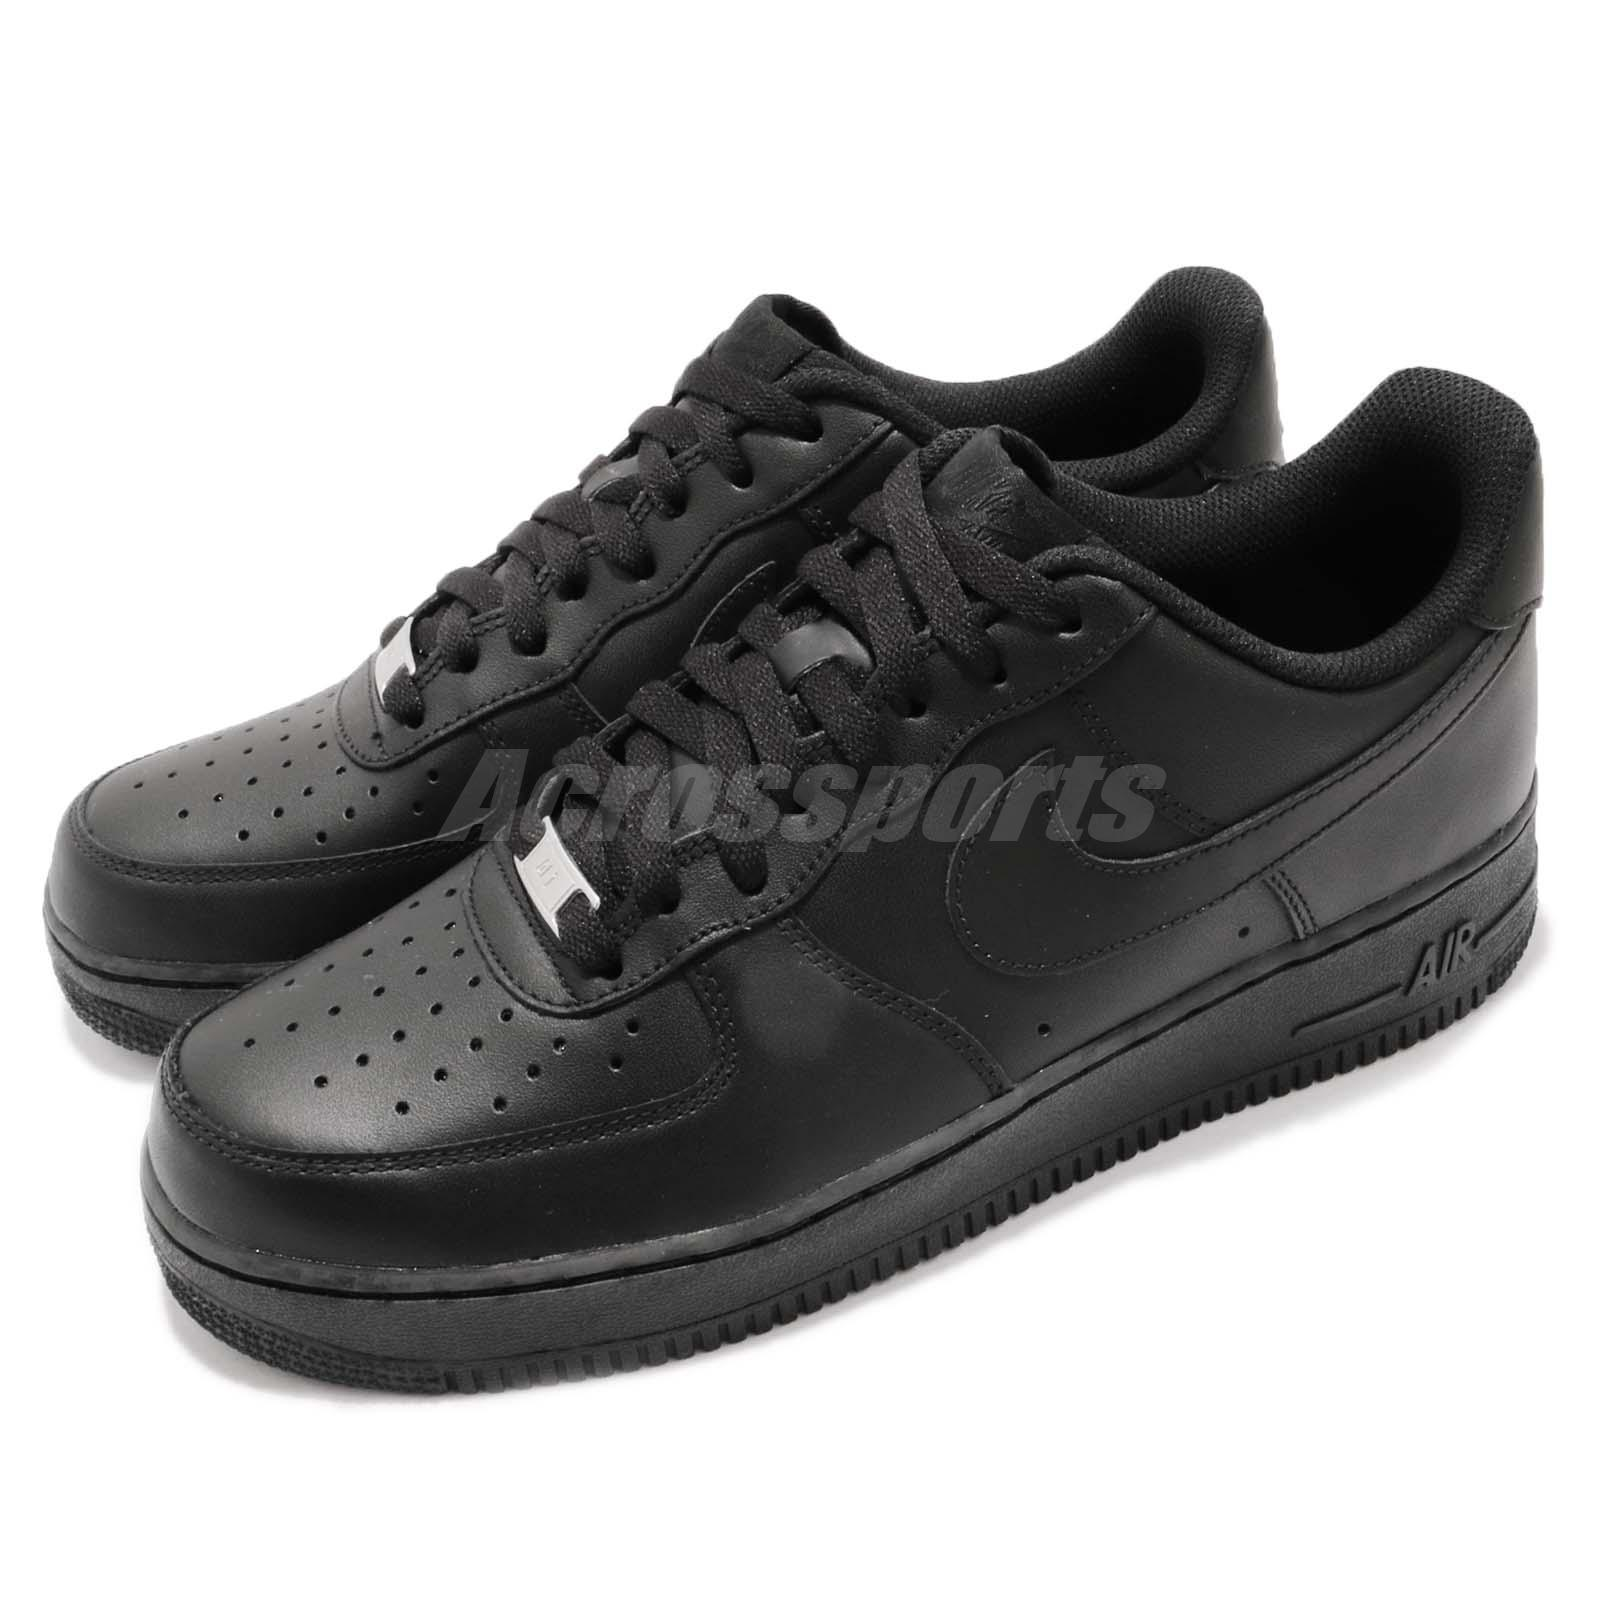 air force 1 classic